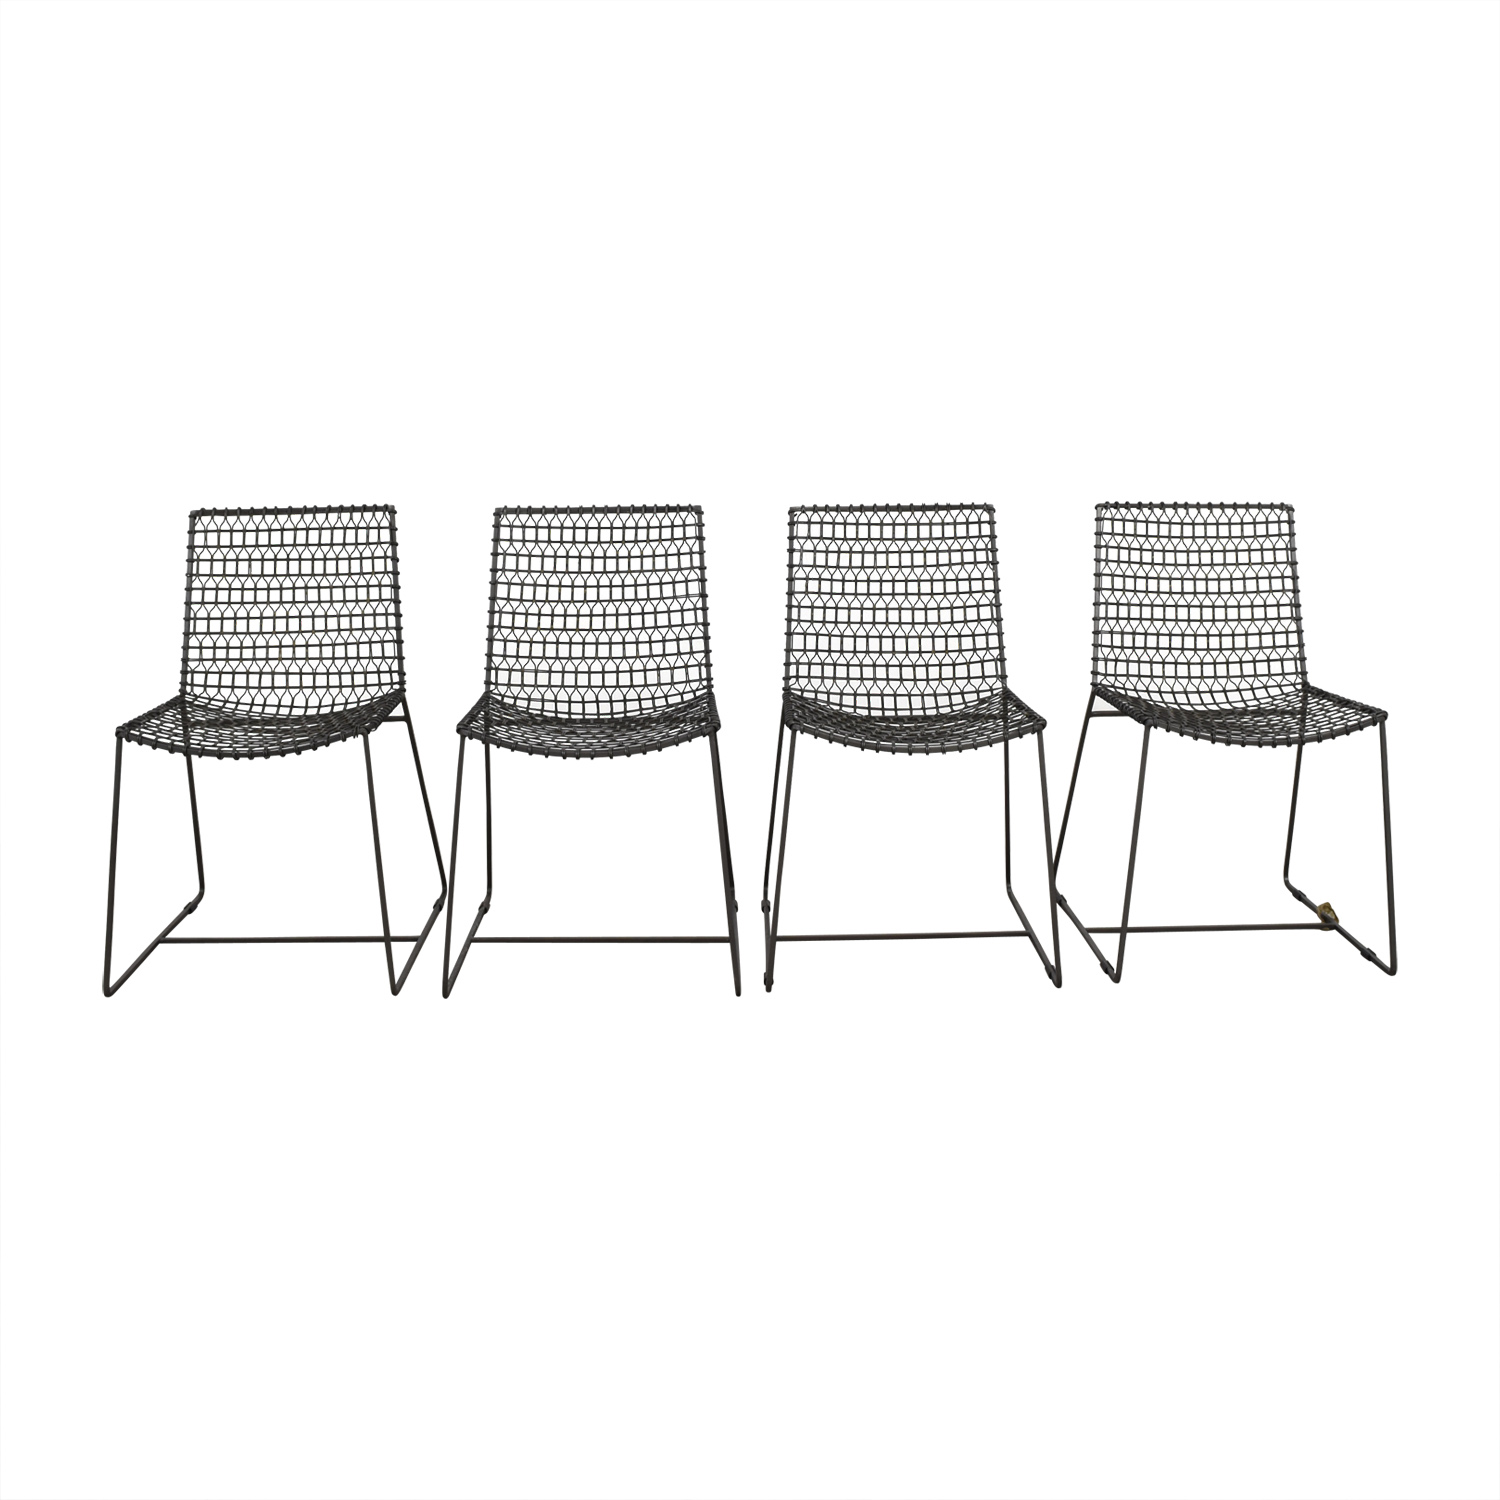 Crate & Barrel Crate & Barrel Metal Chairs nyc